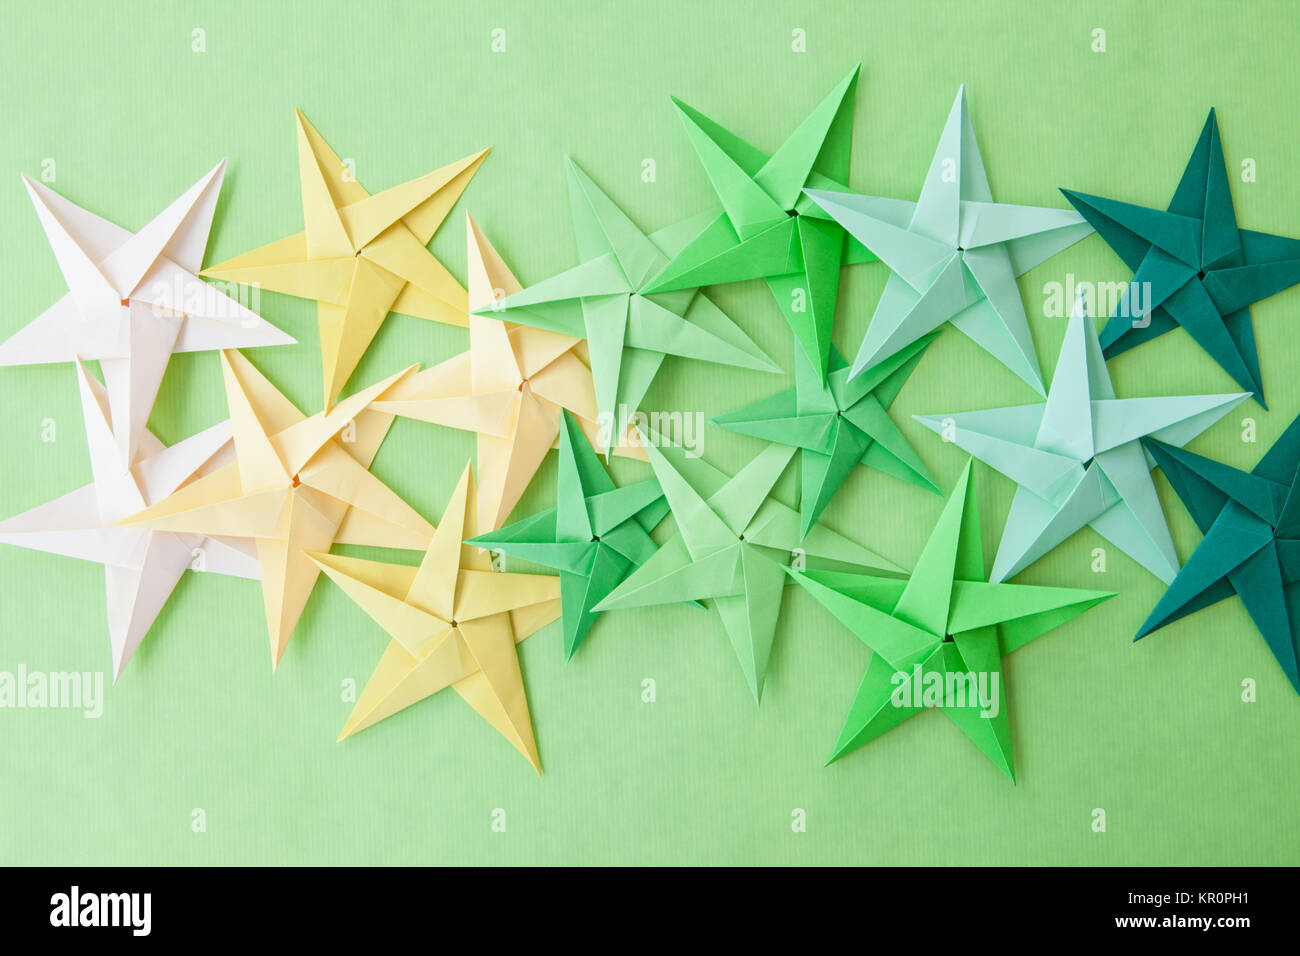 colorful origami stars - Stock Image